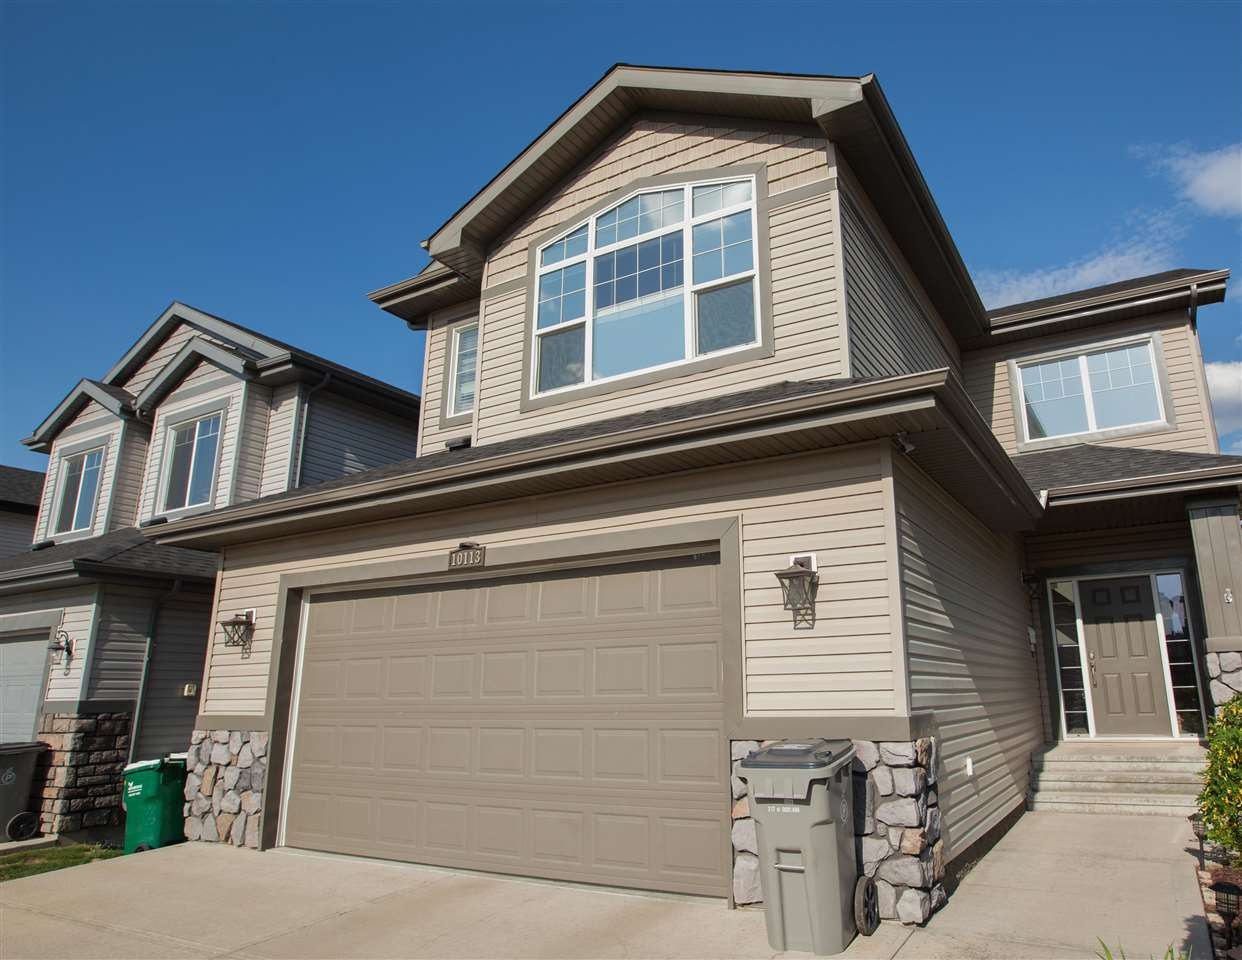 Main Photo: 10113 93 Street: Morinville House for sale : MLS®# E4157001